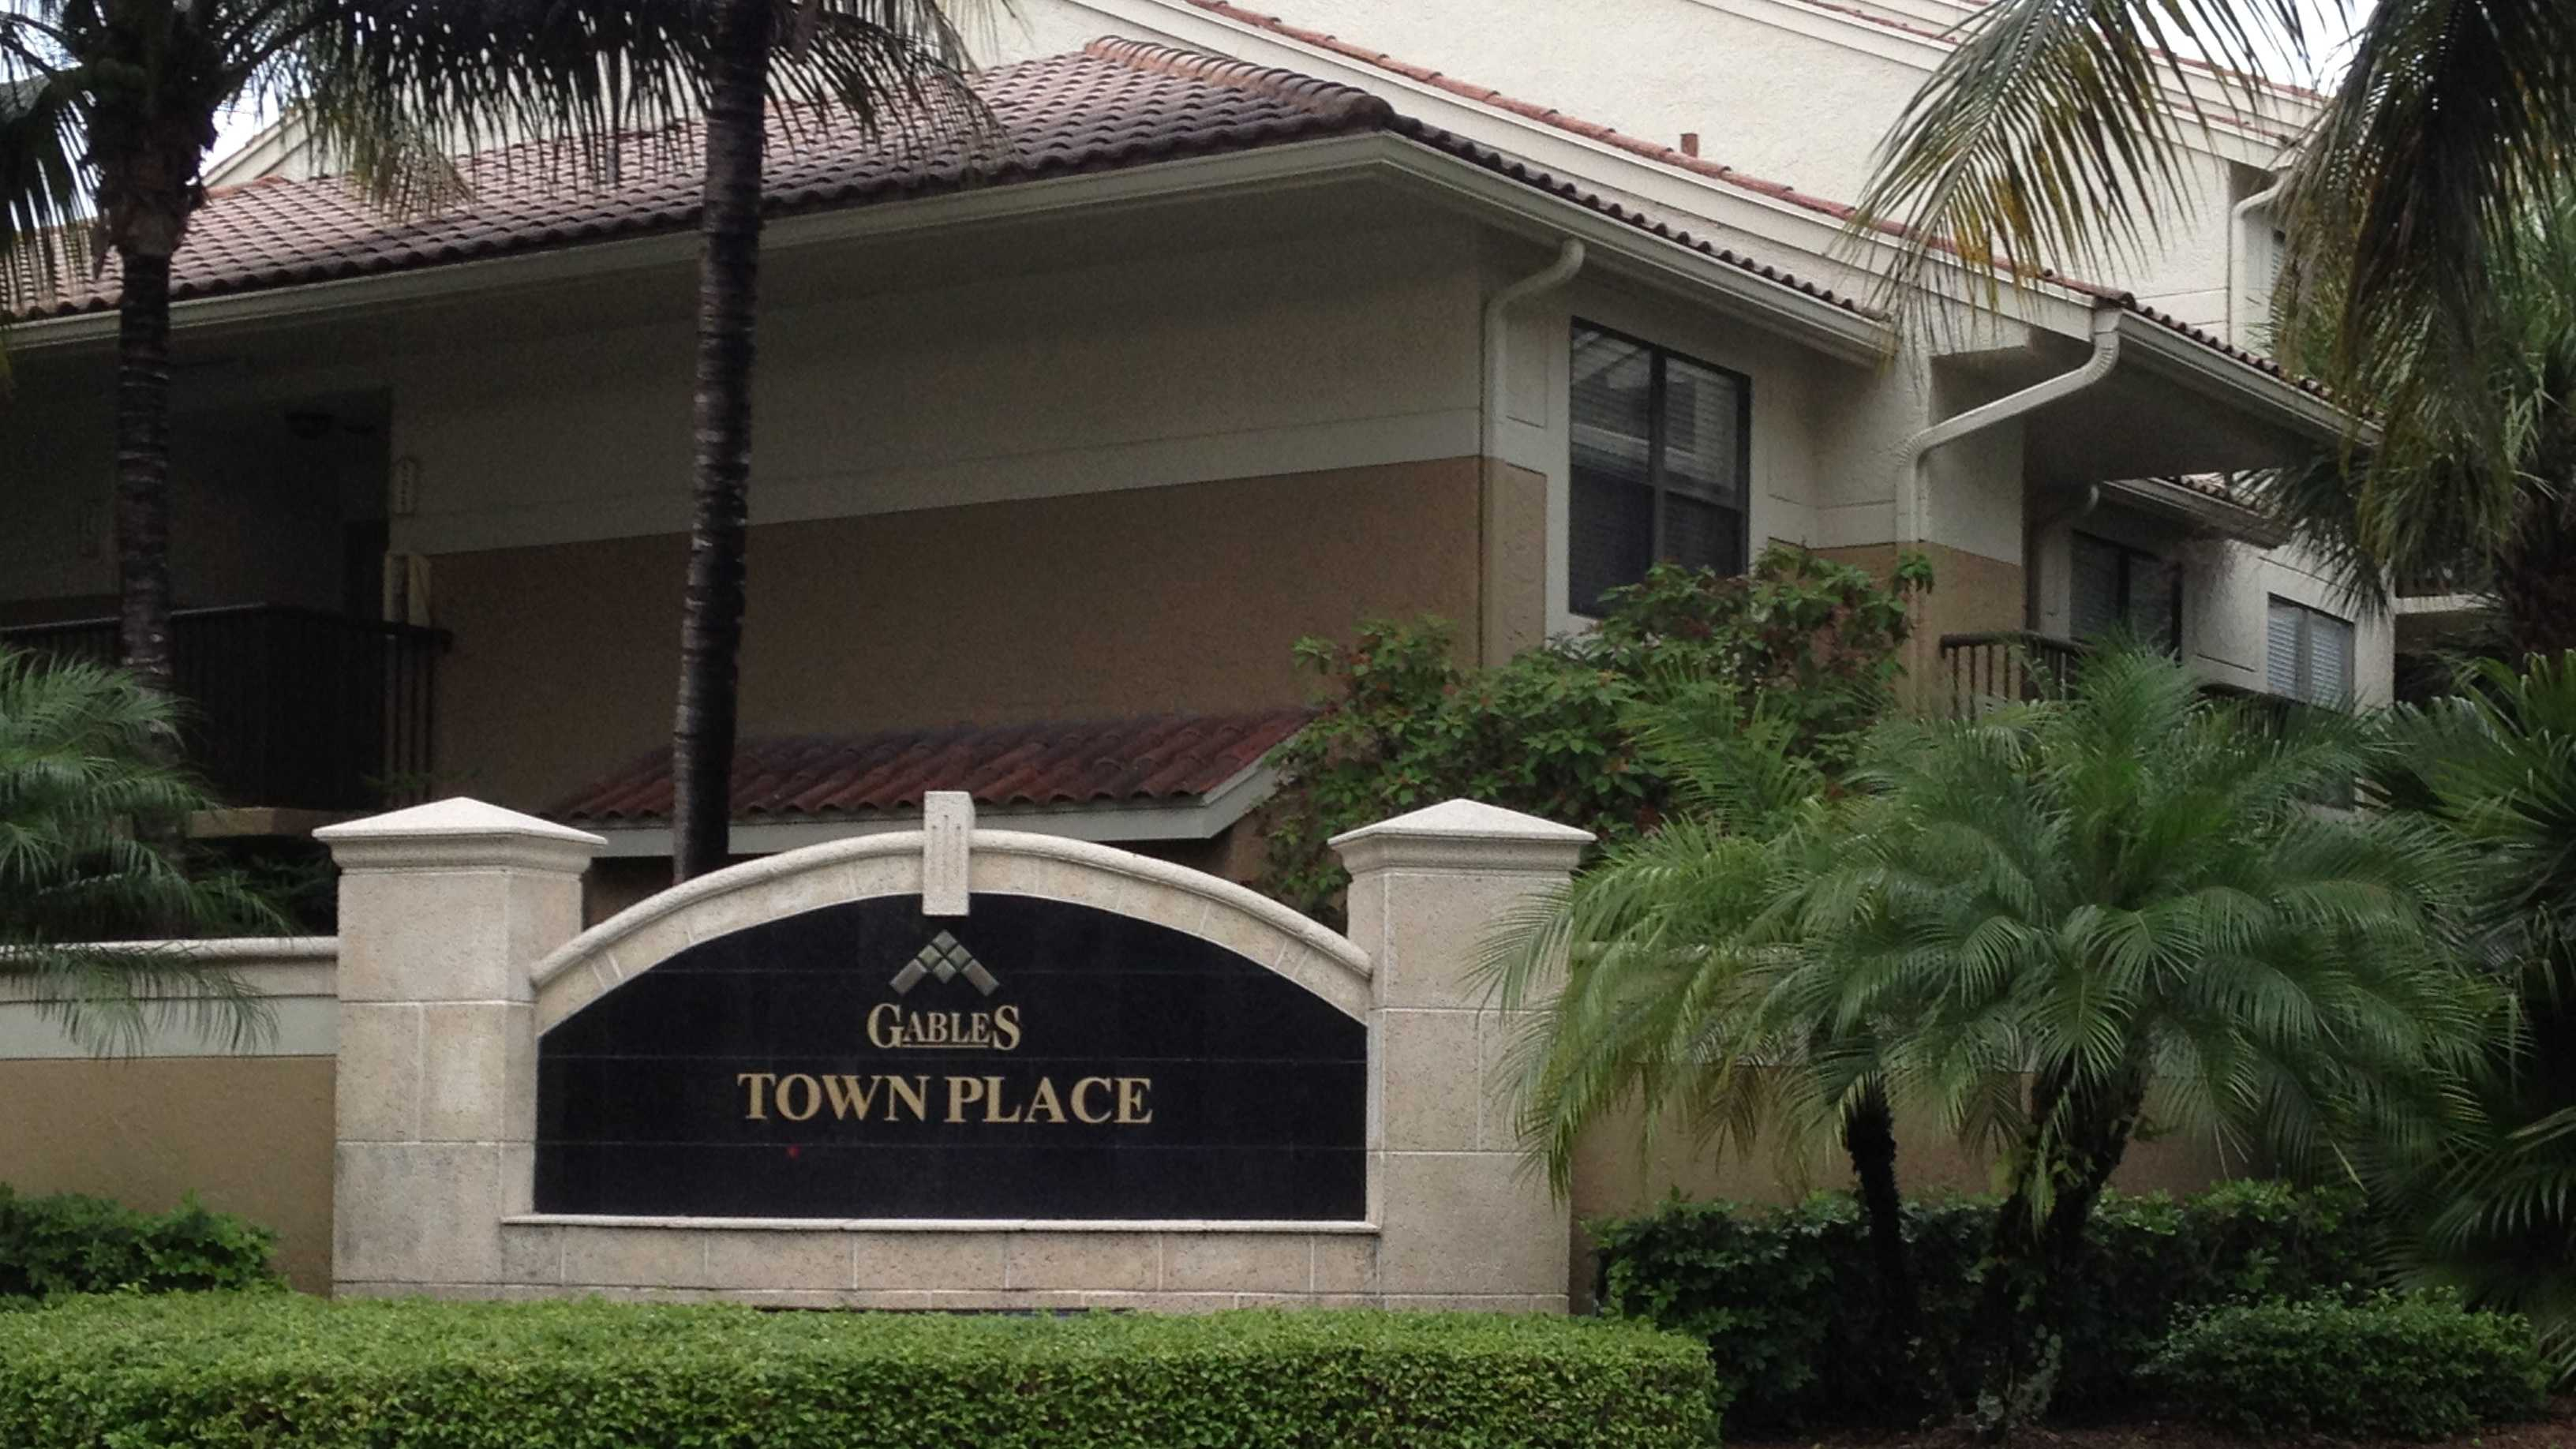 Justin Holt was shot and killed at this Boca Raton apartment complex.